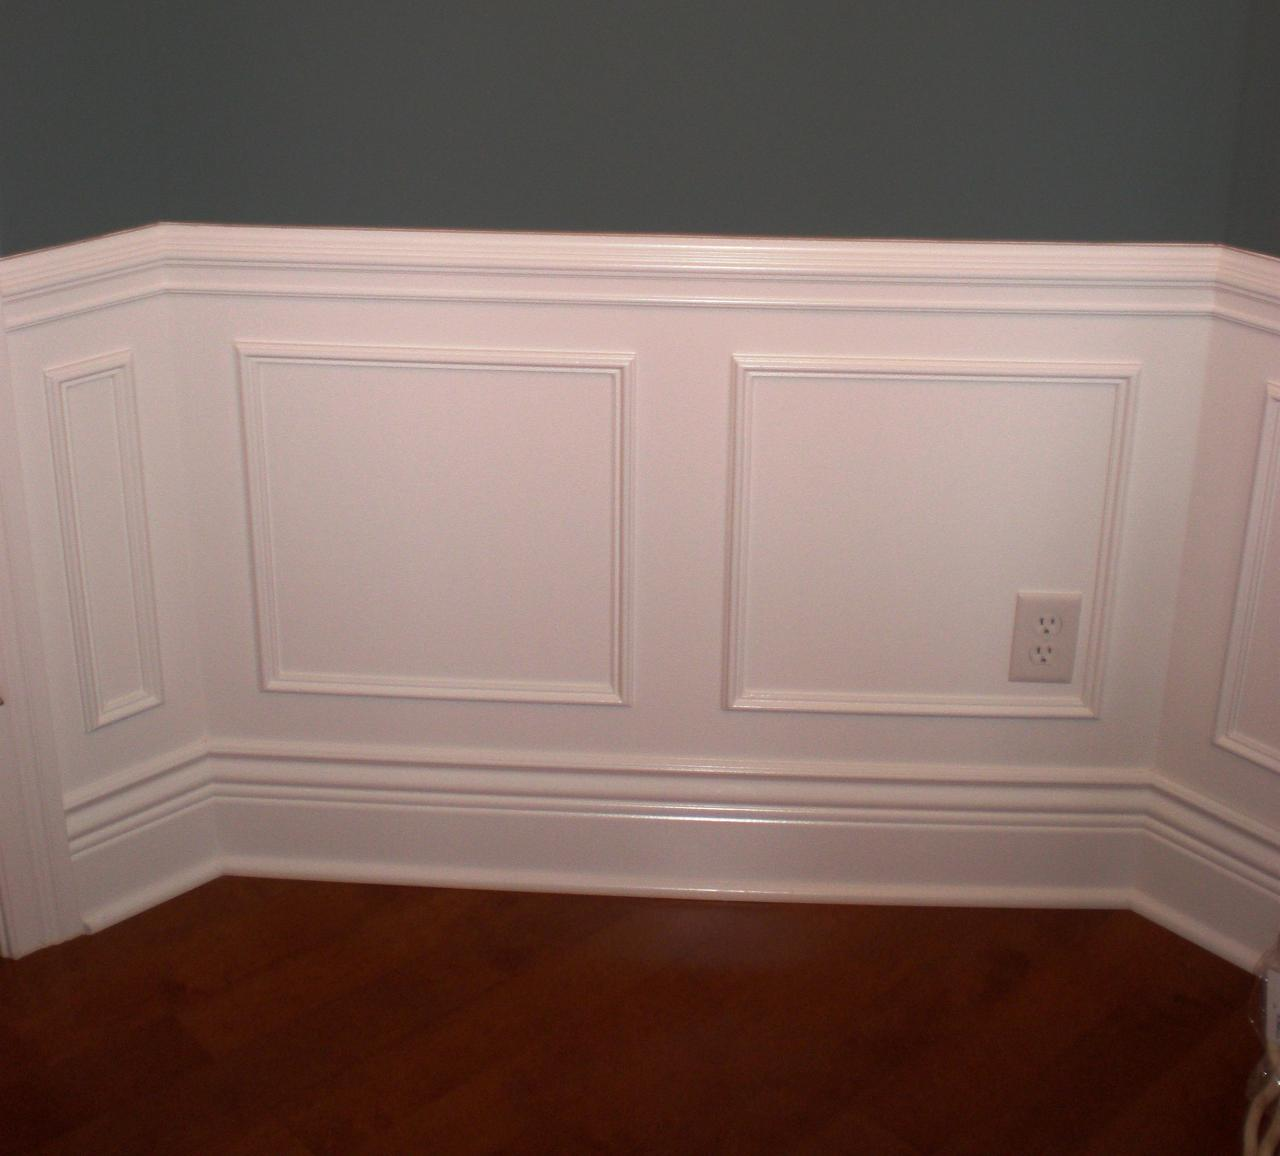 Chair Rail Molding Ideas Wall. chair rail molding ideas